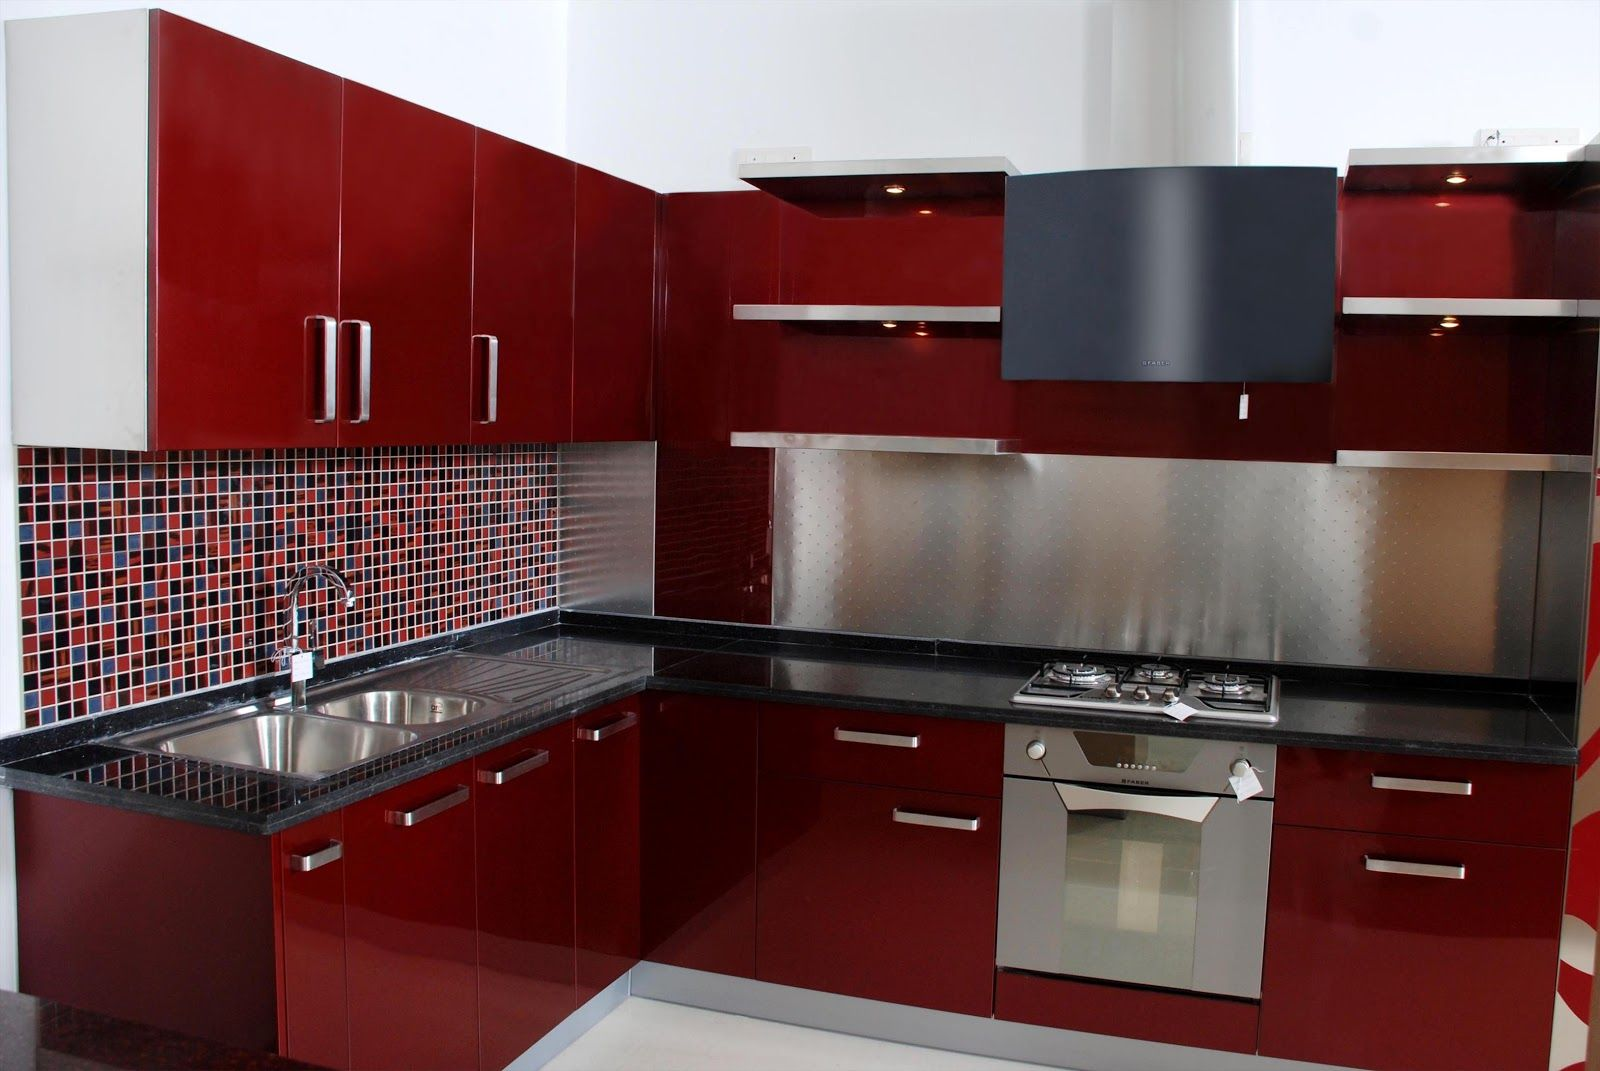 Kitchen Design India Parallel Kitchen Design India  Google Search  Kitchen .